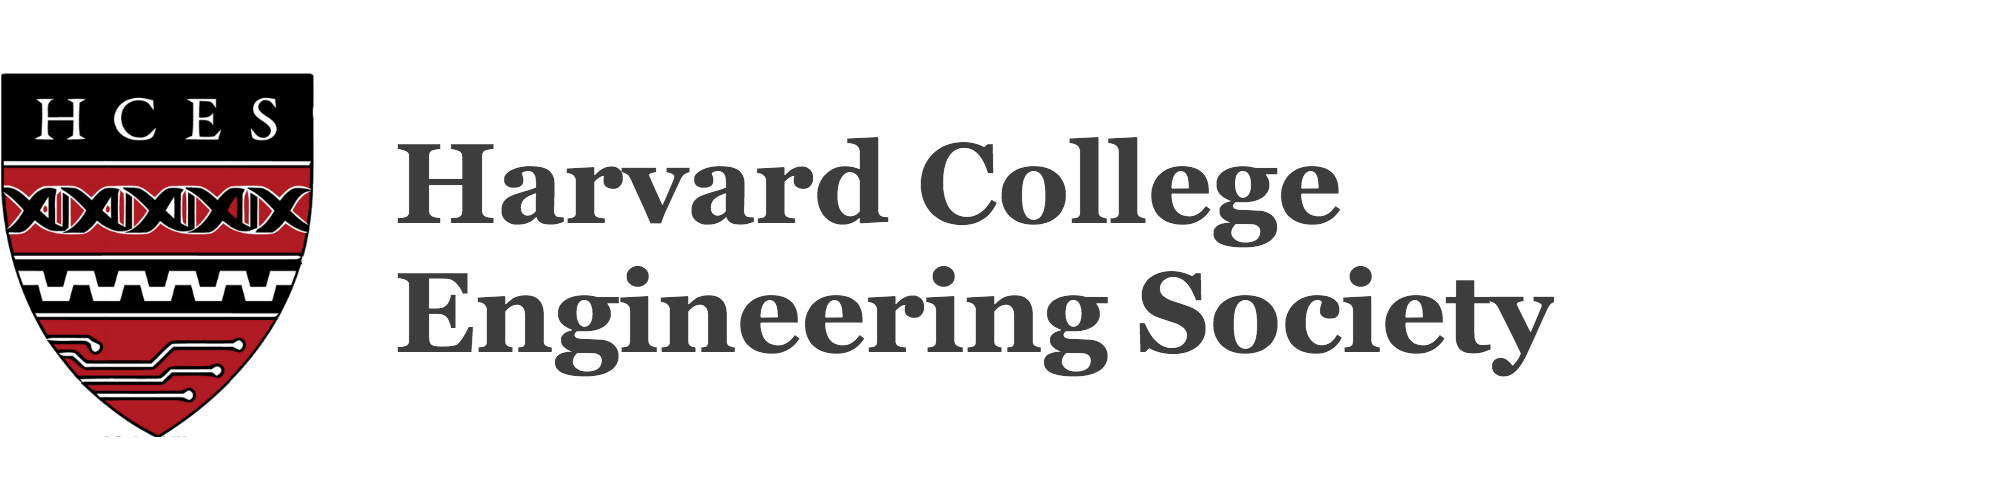 Harvard College Engineering Society